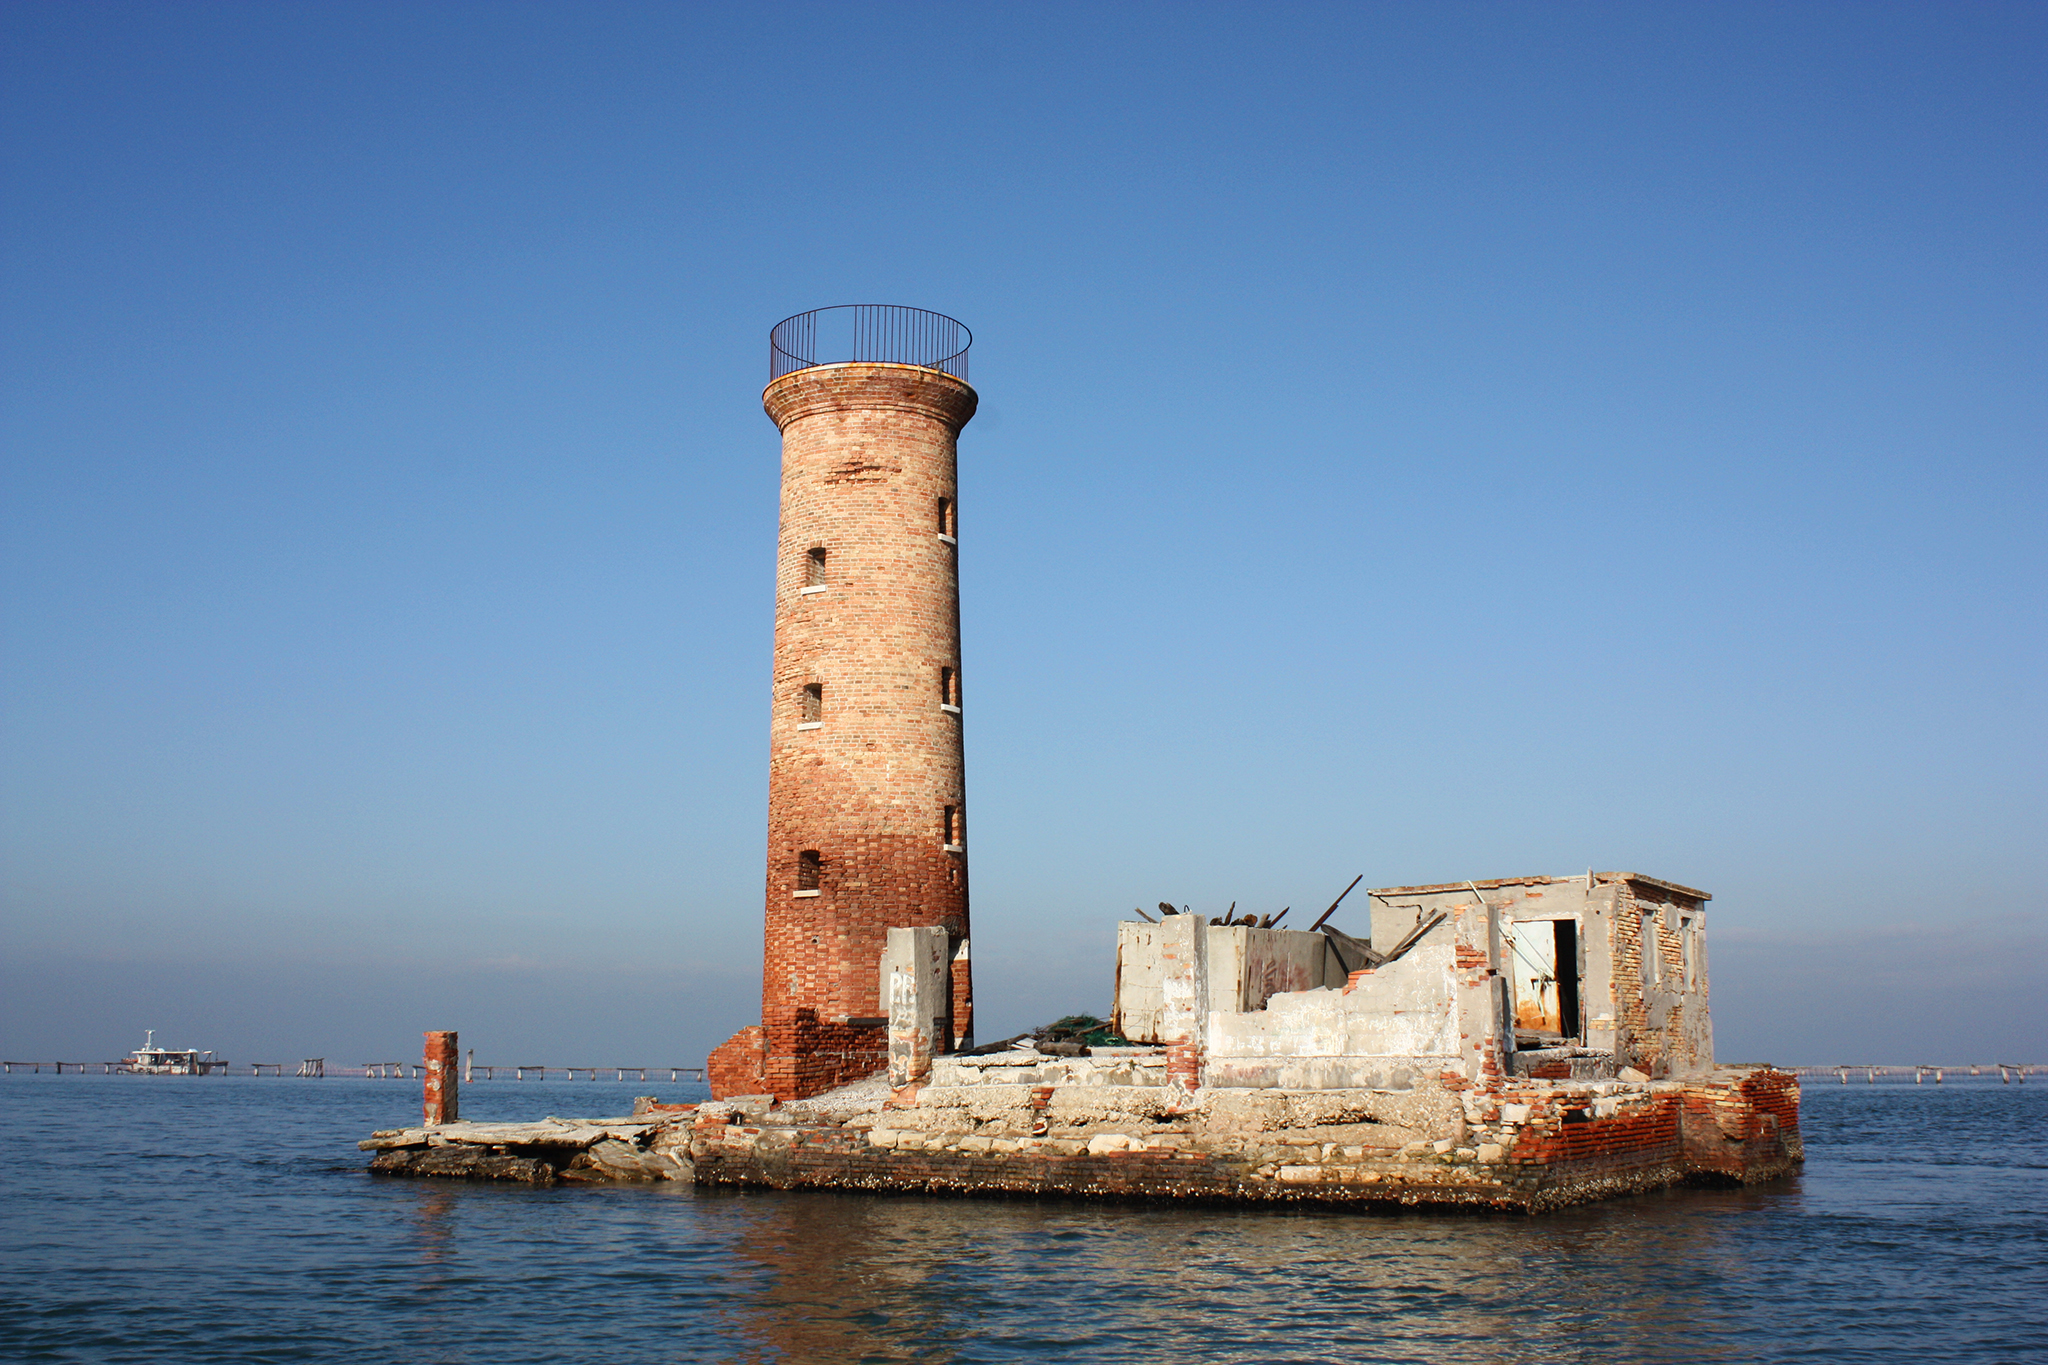 Venezia - We are getting started with a new renovation, bringing back to life a small lighthouse in the middle of the Venetian lagoon.Read More →